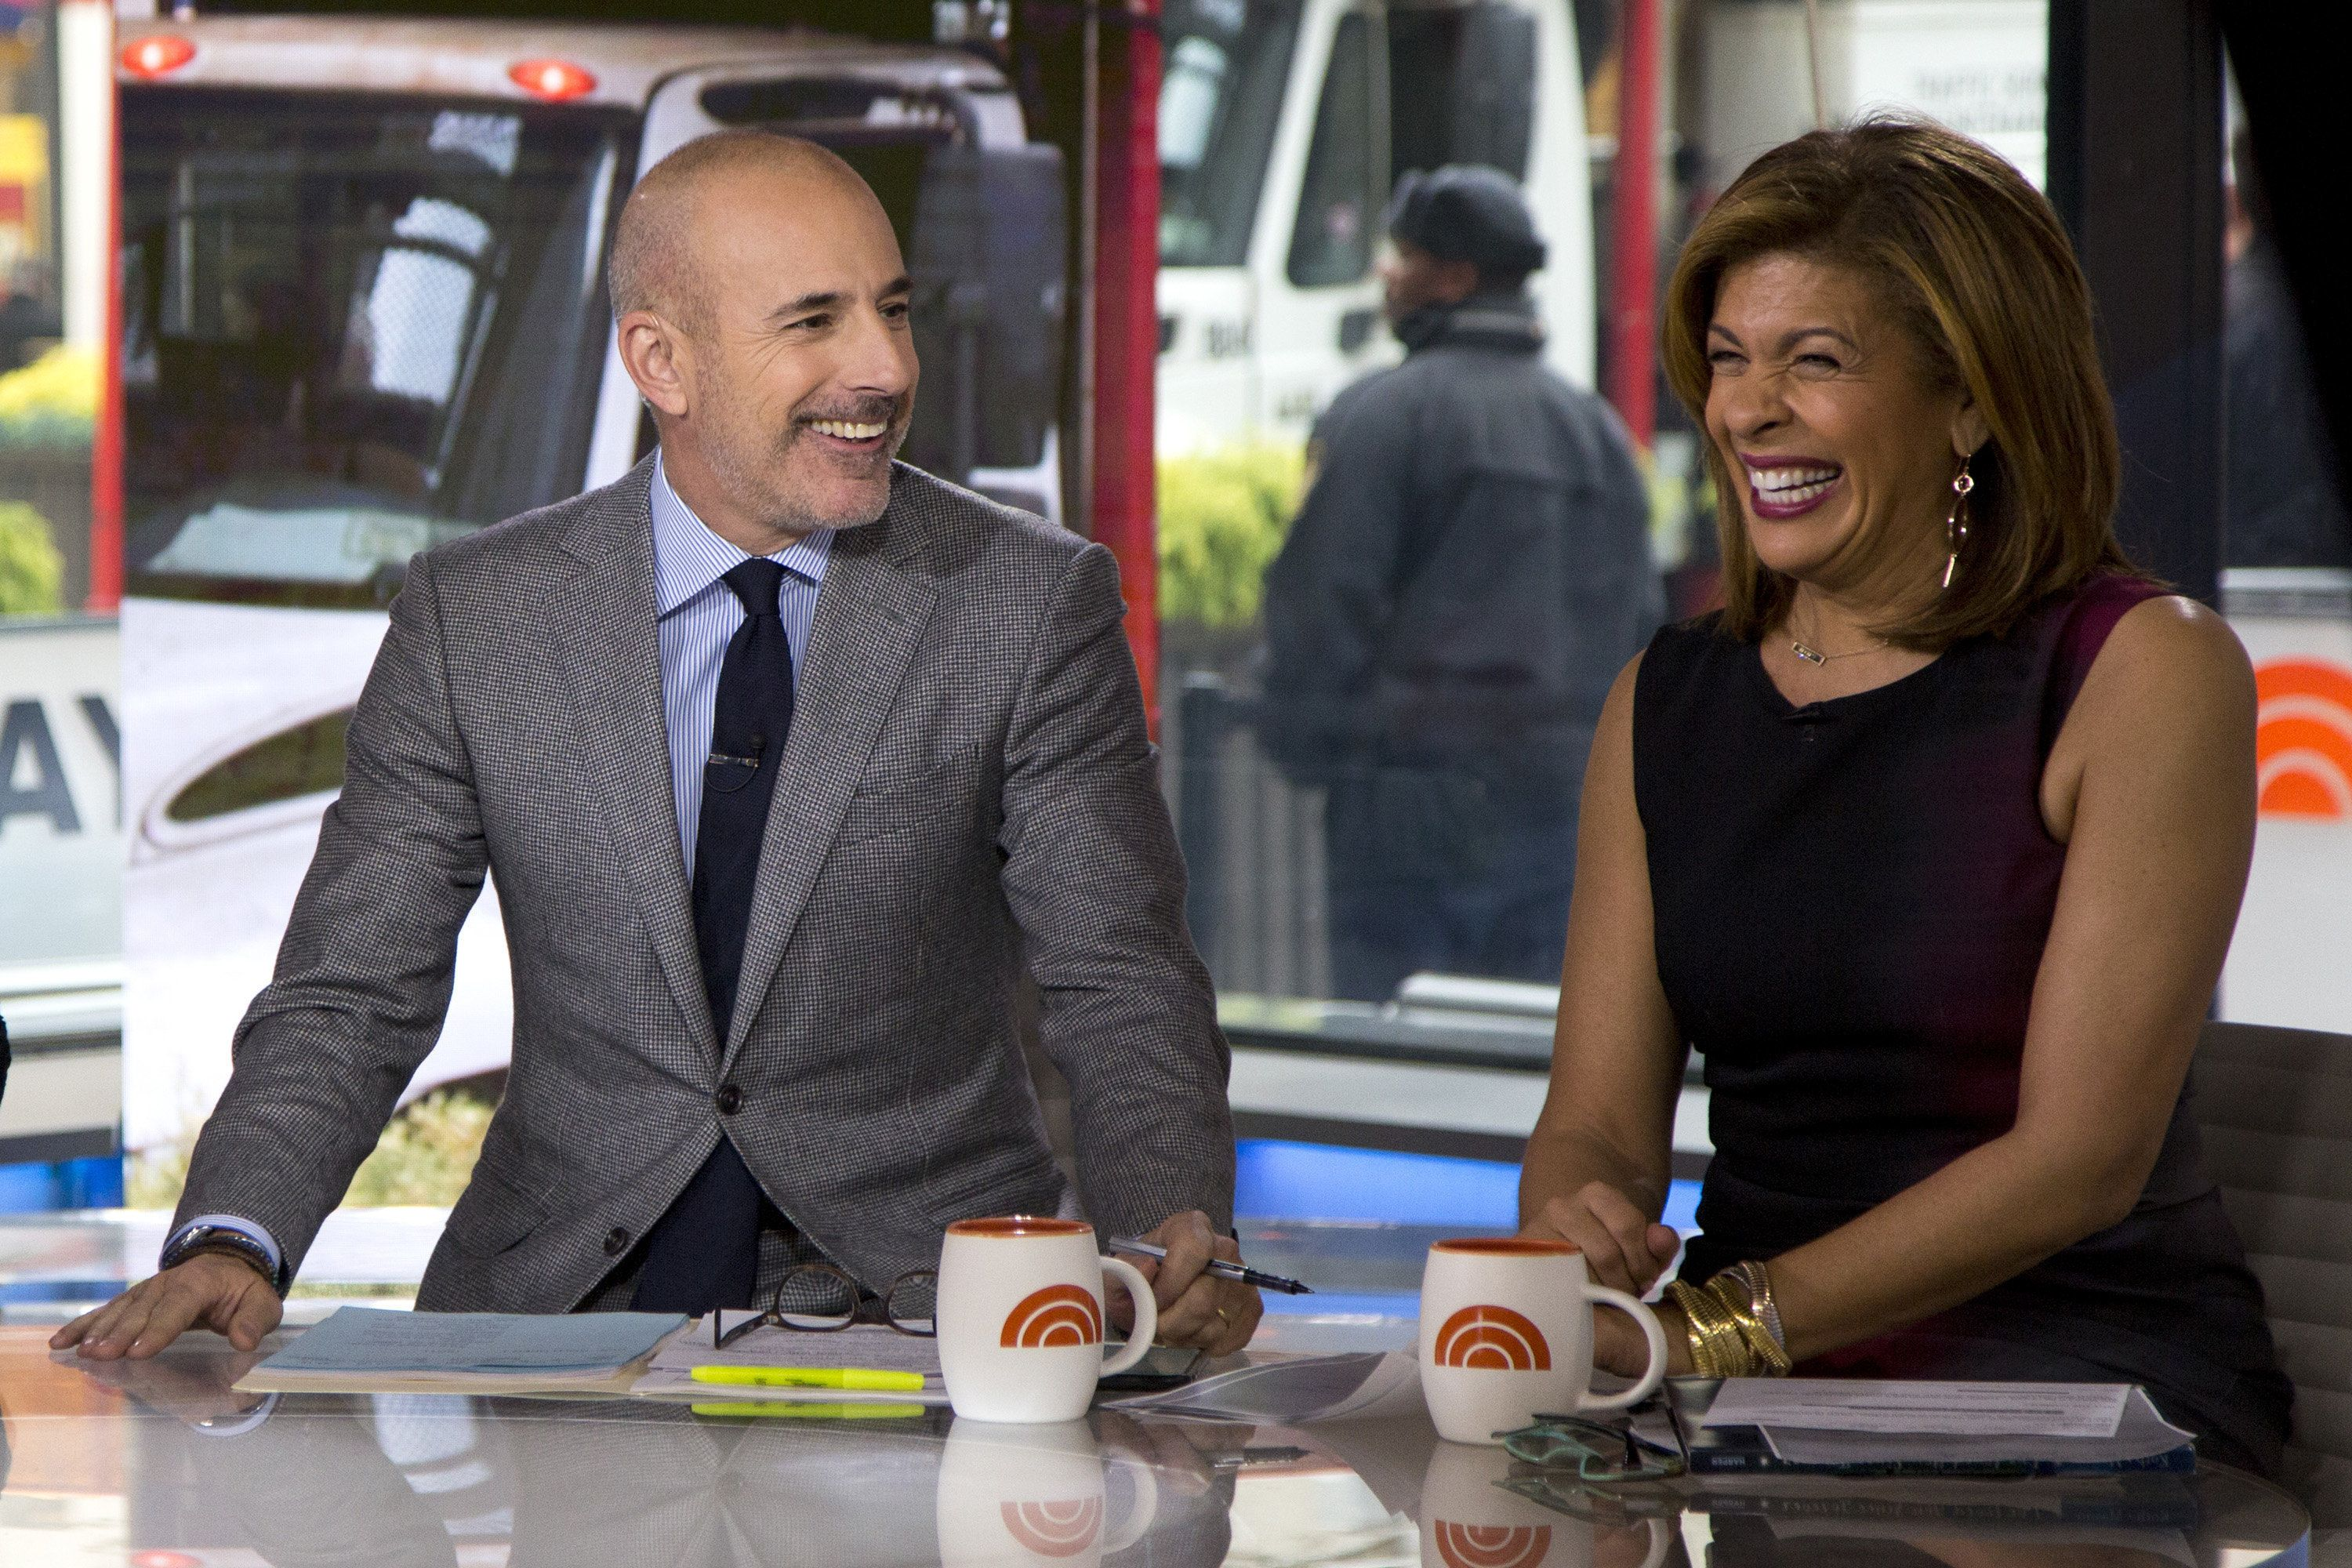 Cmon Sexism Is At Least Part Of The Reason Hoda Kotb Making Less Than Matt Lauer